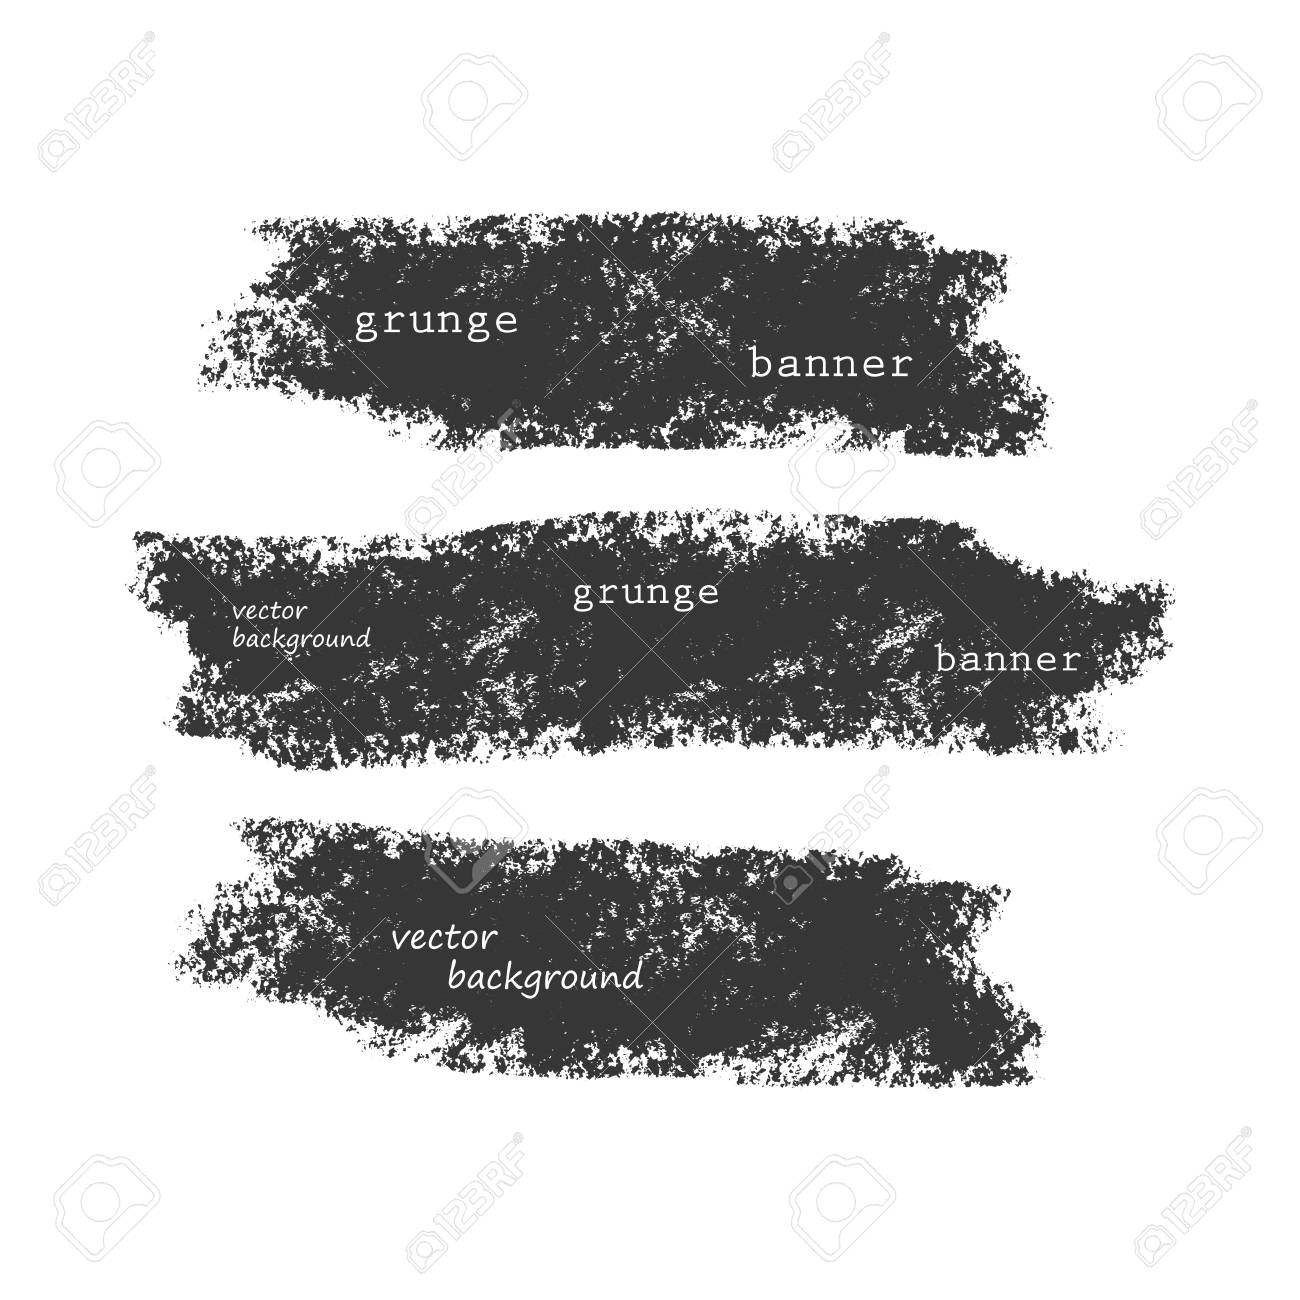 Vector grunge background. hand drawn. Stock Vector - 20960948